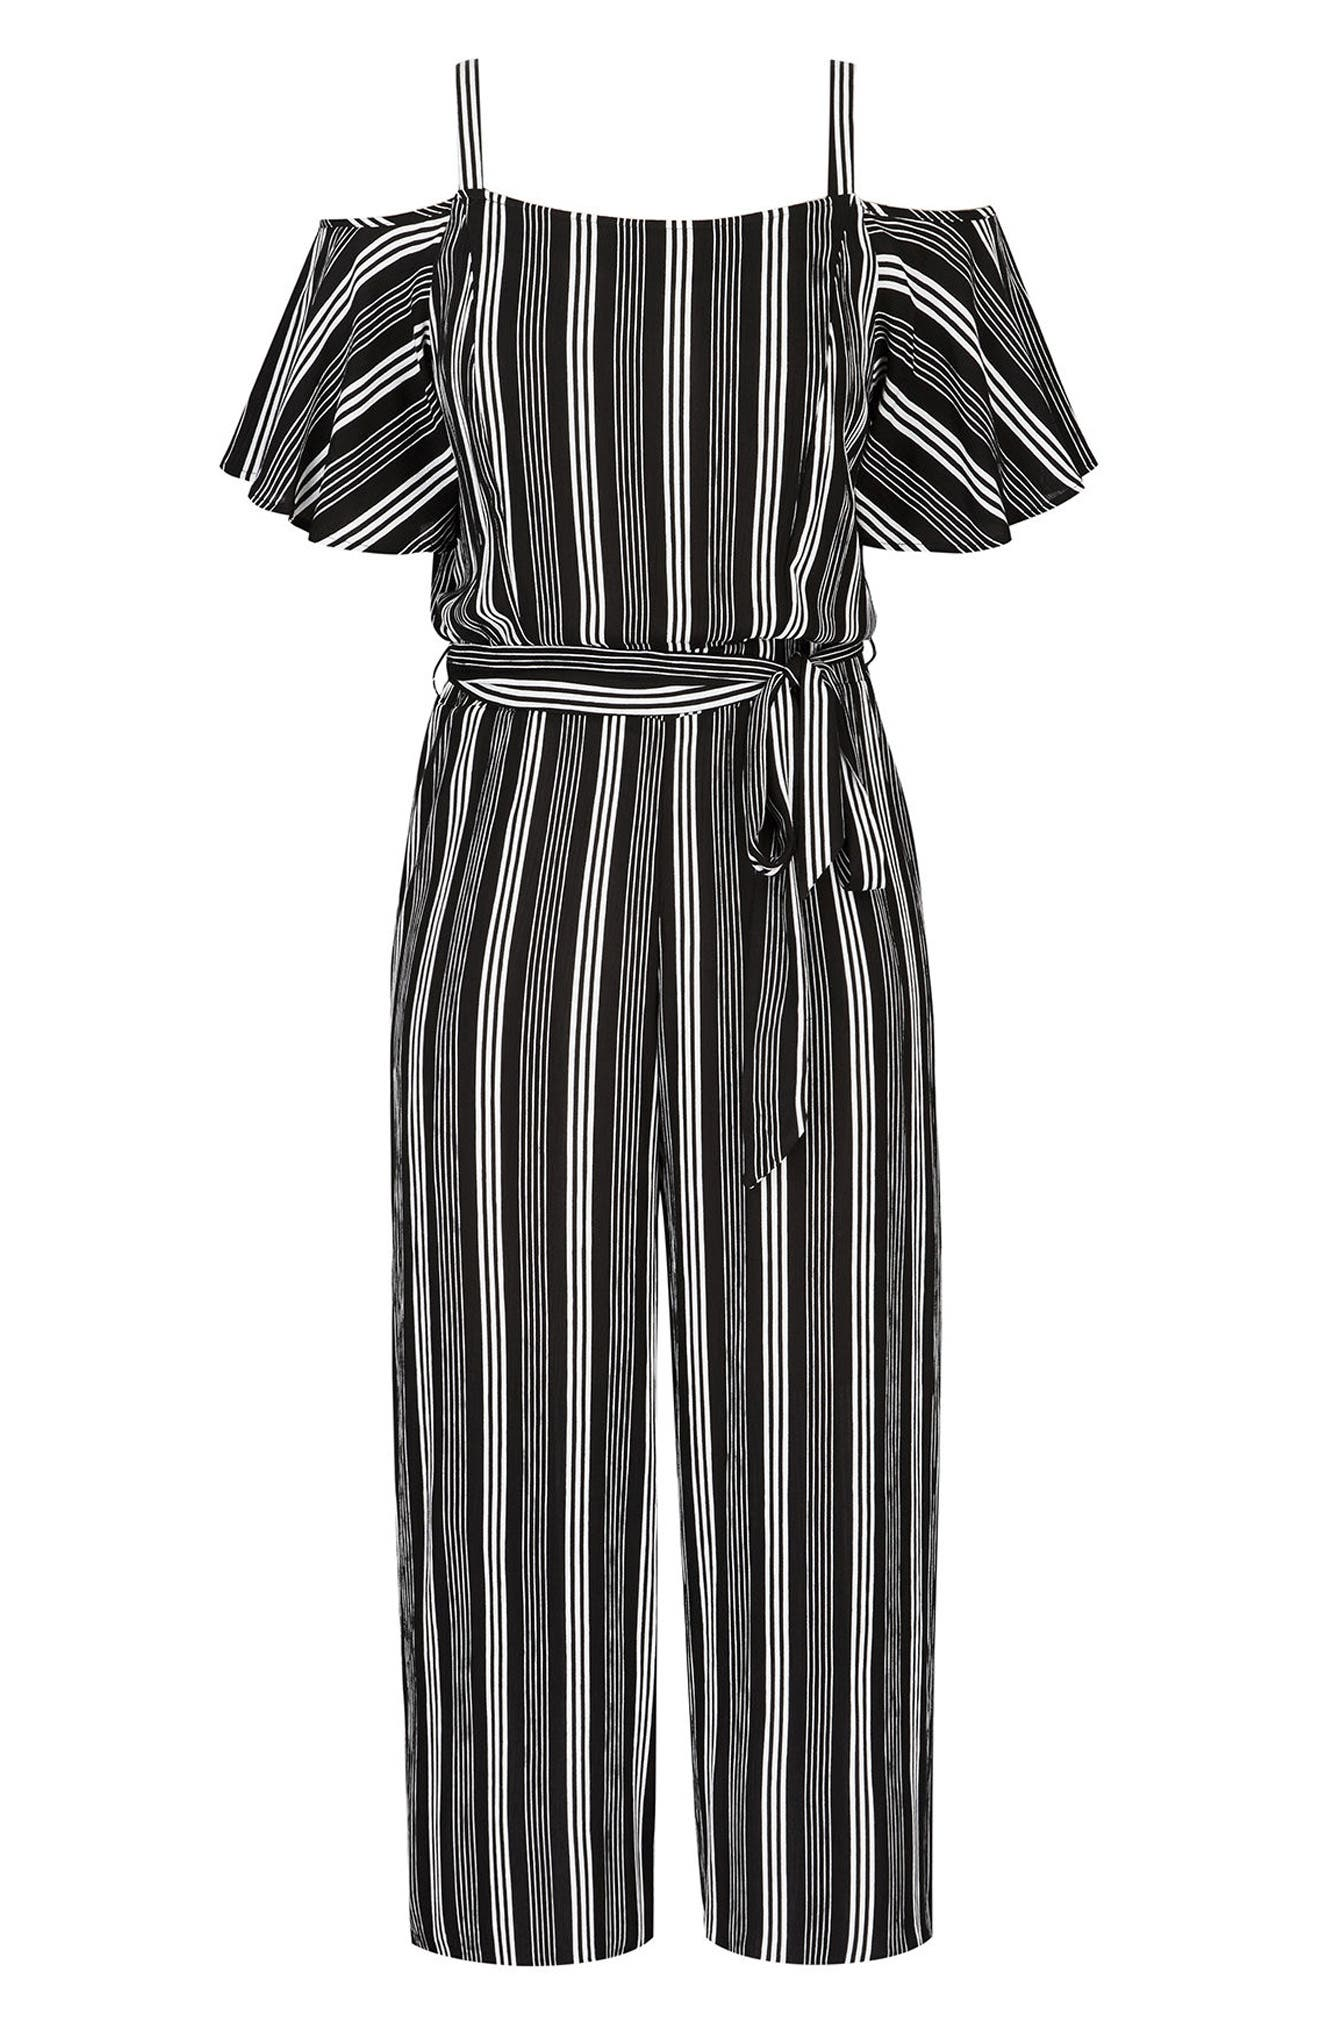 Stripe Play Cold Shoulder Jumpsuit,                             Alternate thumbnail 3, color,                             001